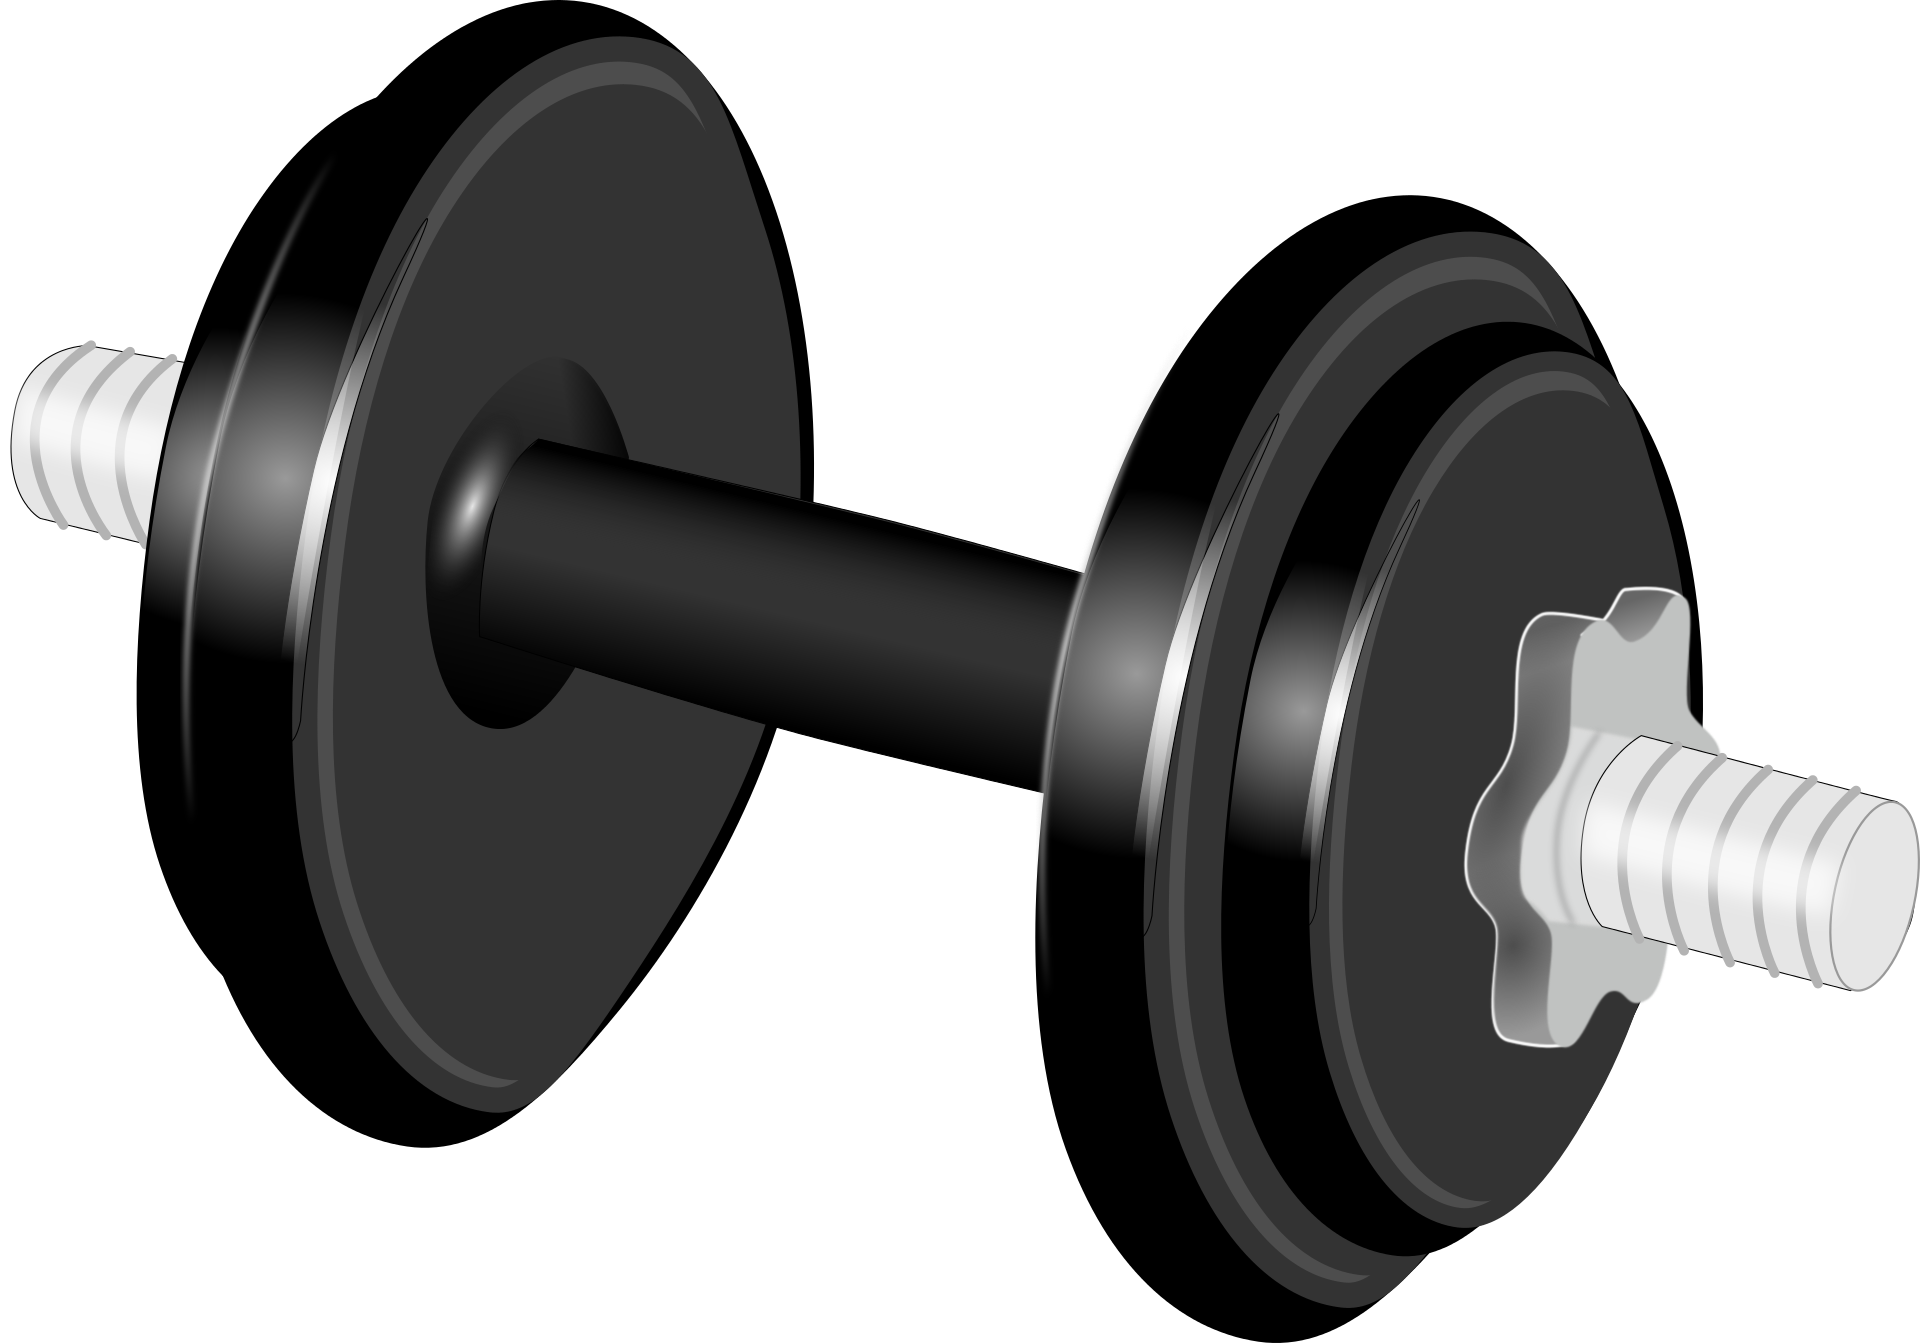 Weight clip art transprent. Dumbbell clipart sport training